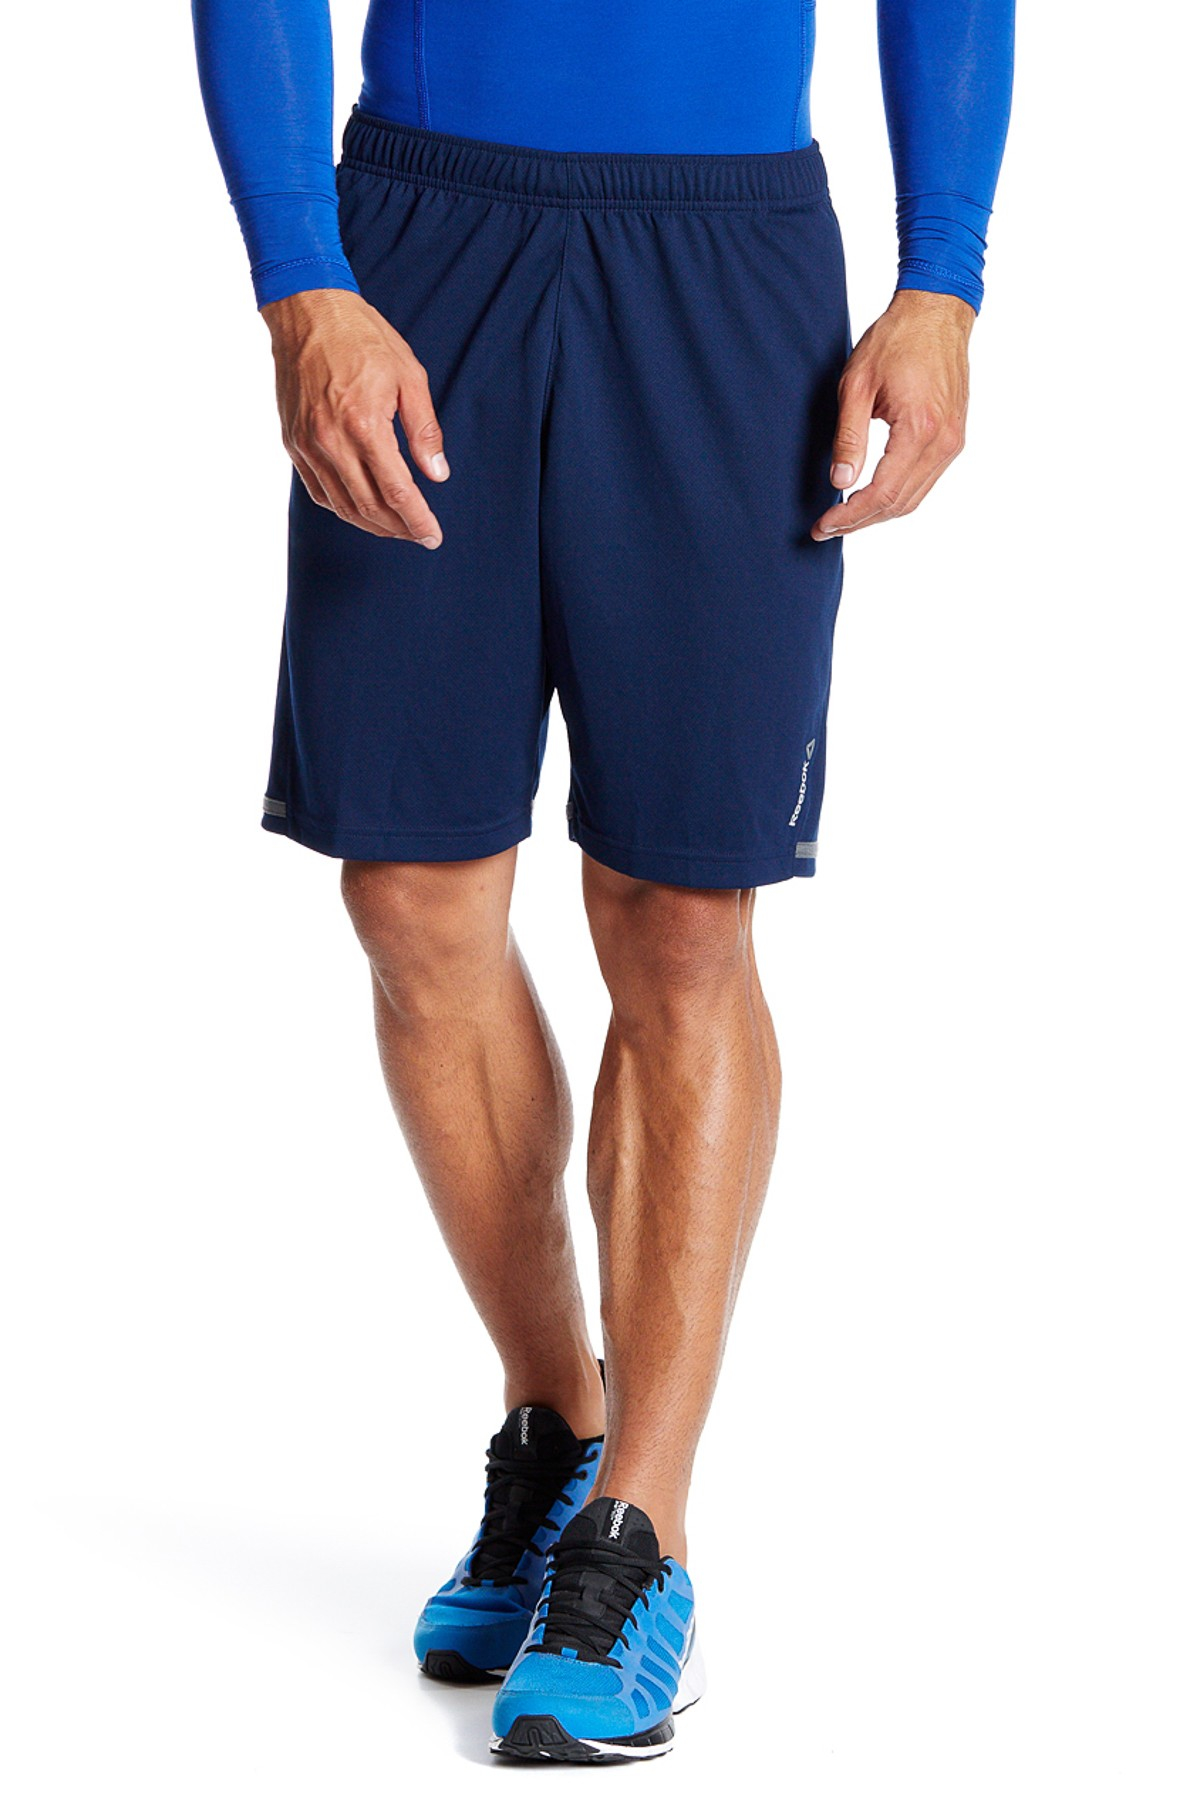 Lyst - Reebok Workout Textured Short in Blue for Men 2621ae82bf25c